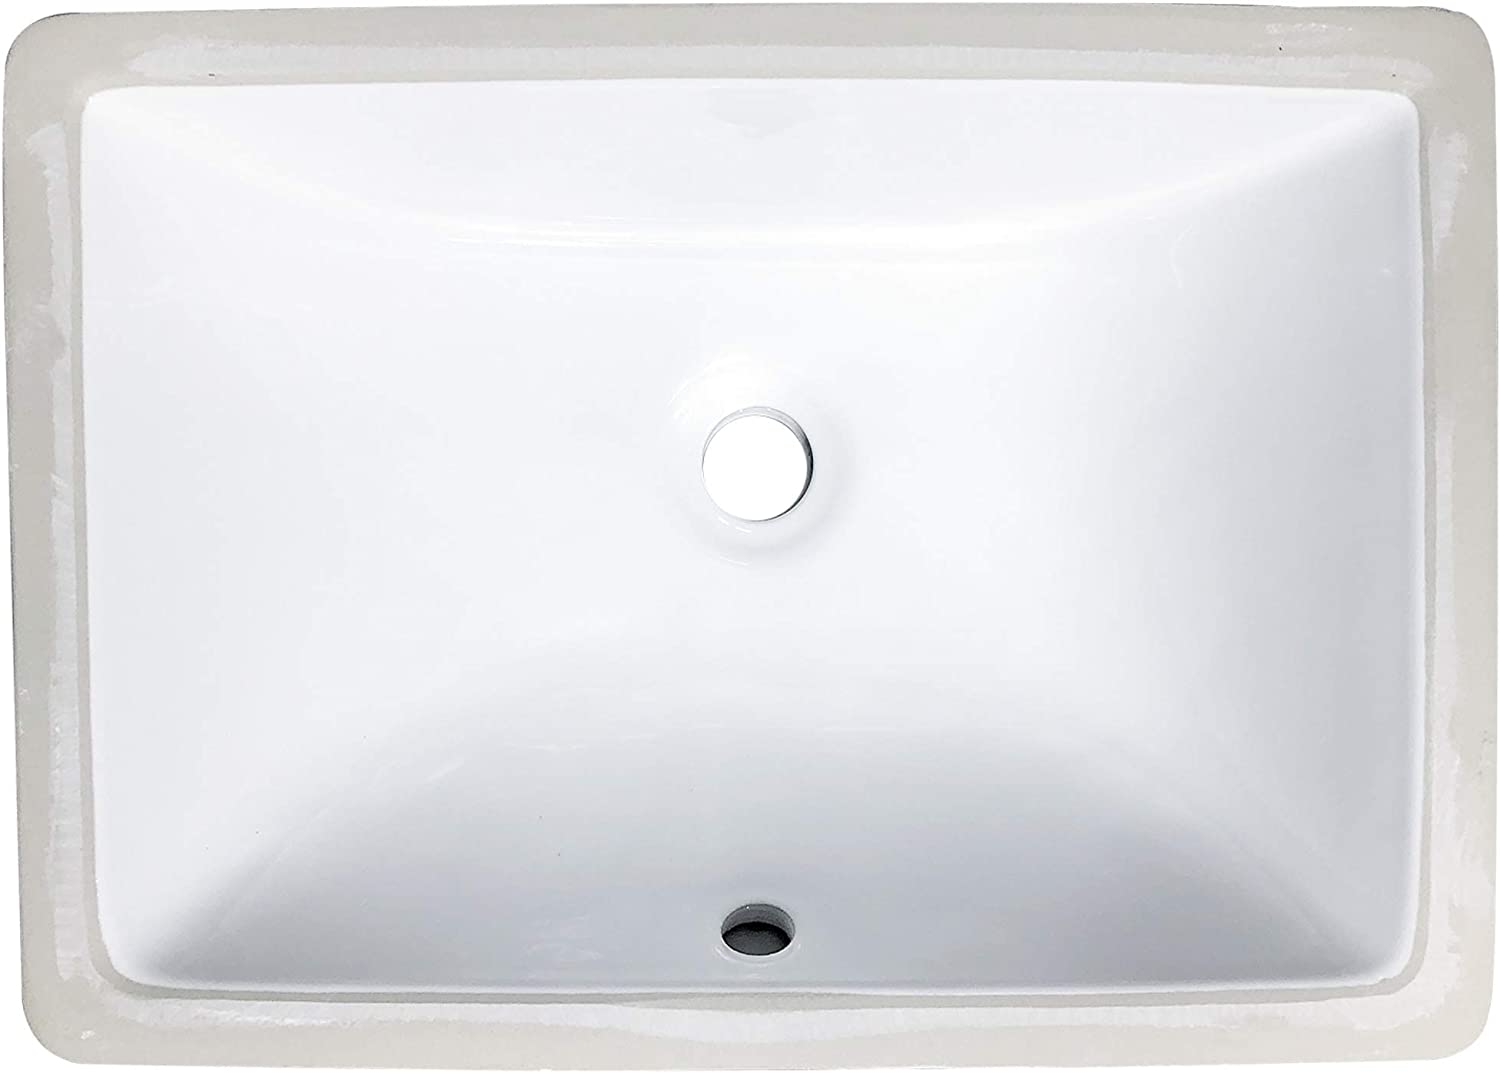 Buy Zeek Undermount Bathroom Sink 16x11 Small Rectangle Narrow Vanity Sink White Fits 18 Inch Vanity With Overflow 16 Inch By 11 Inch Opening Vitreous China Ceramic Online In Vietnam B0832bsvgg